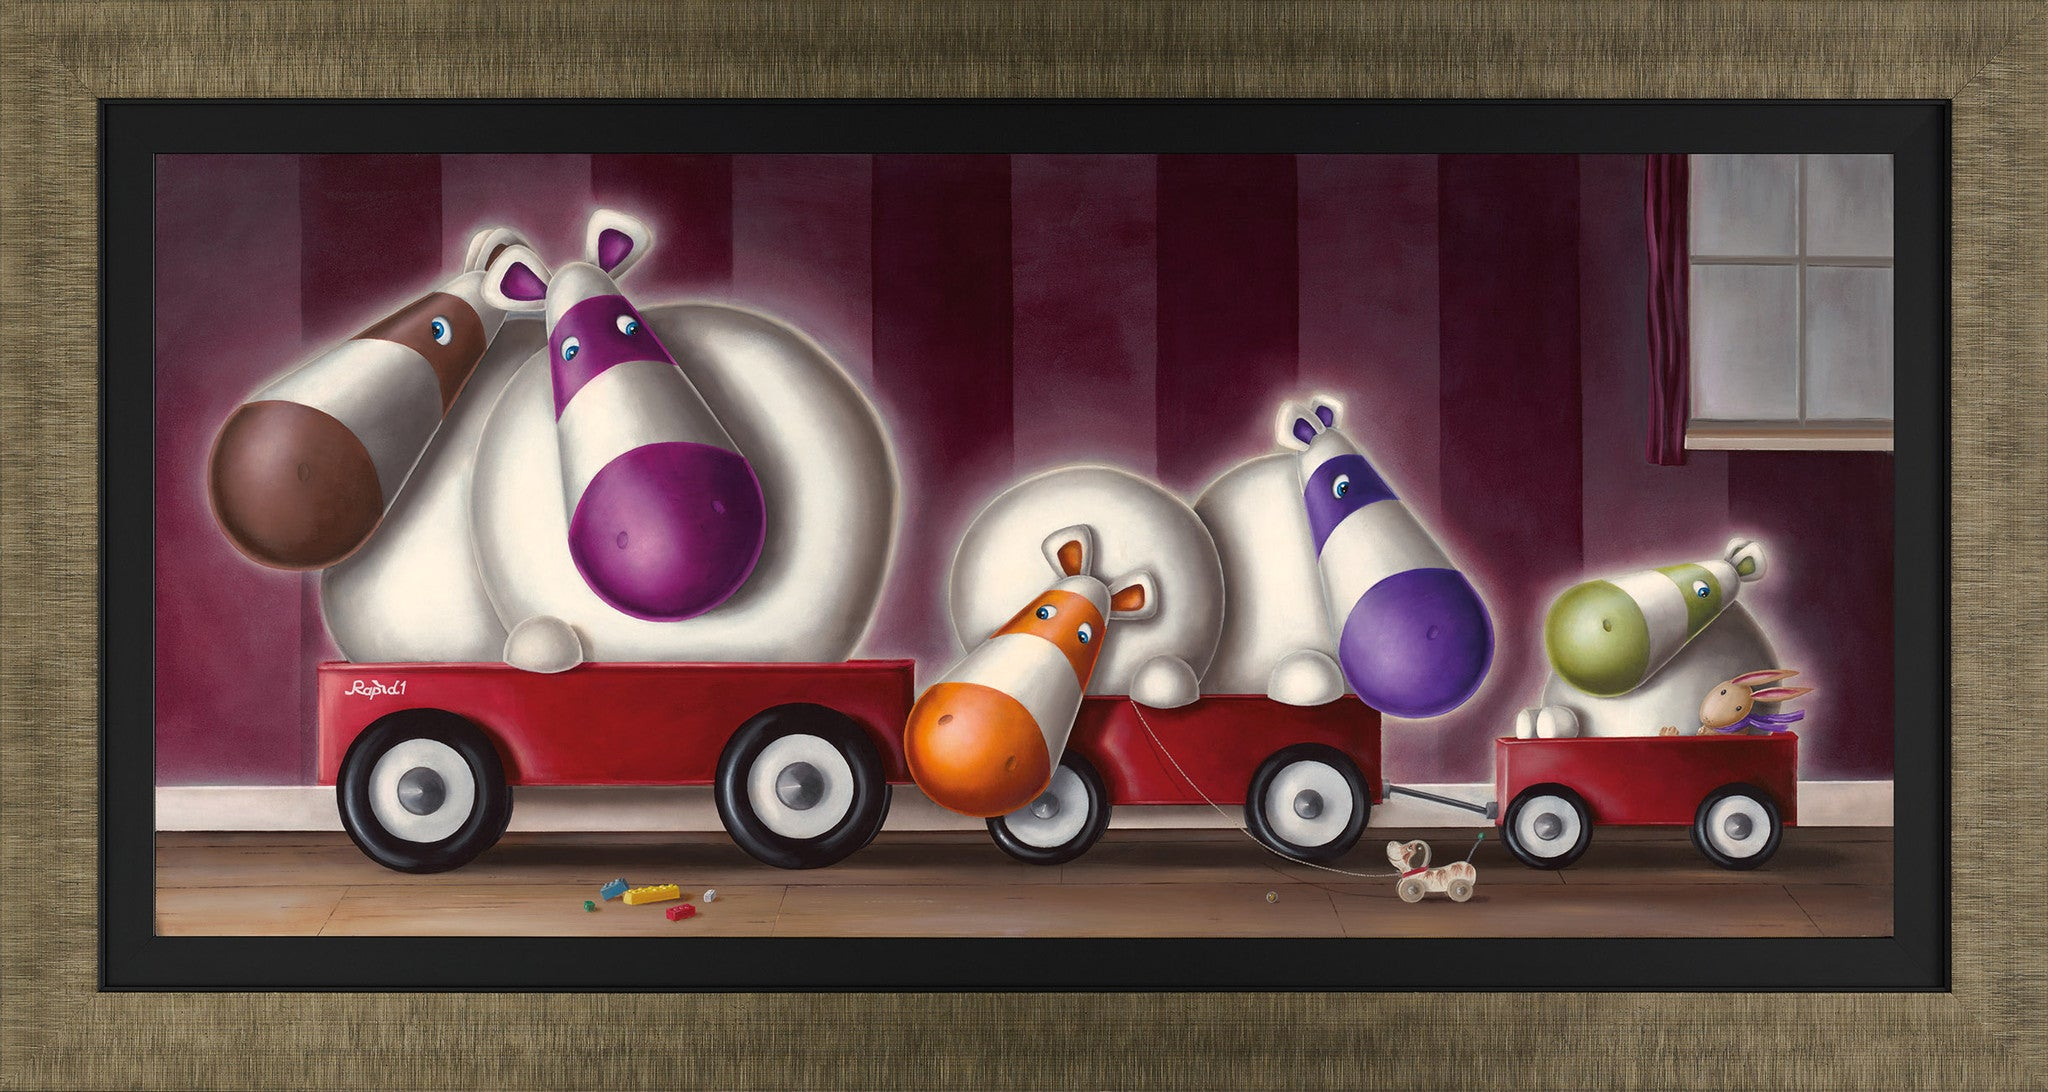 This Is How We Roll - 2015 - Peter Smith - Antidote Art